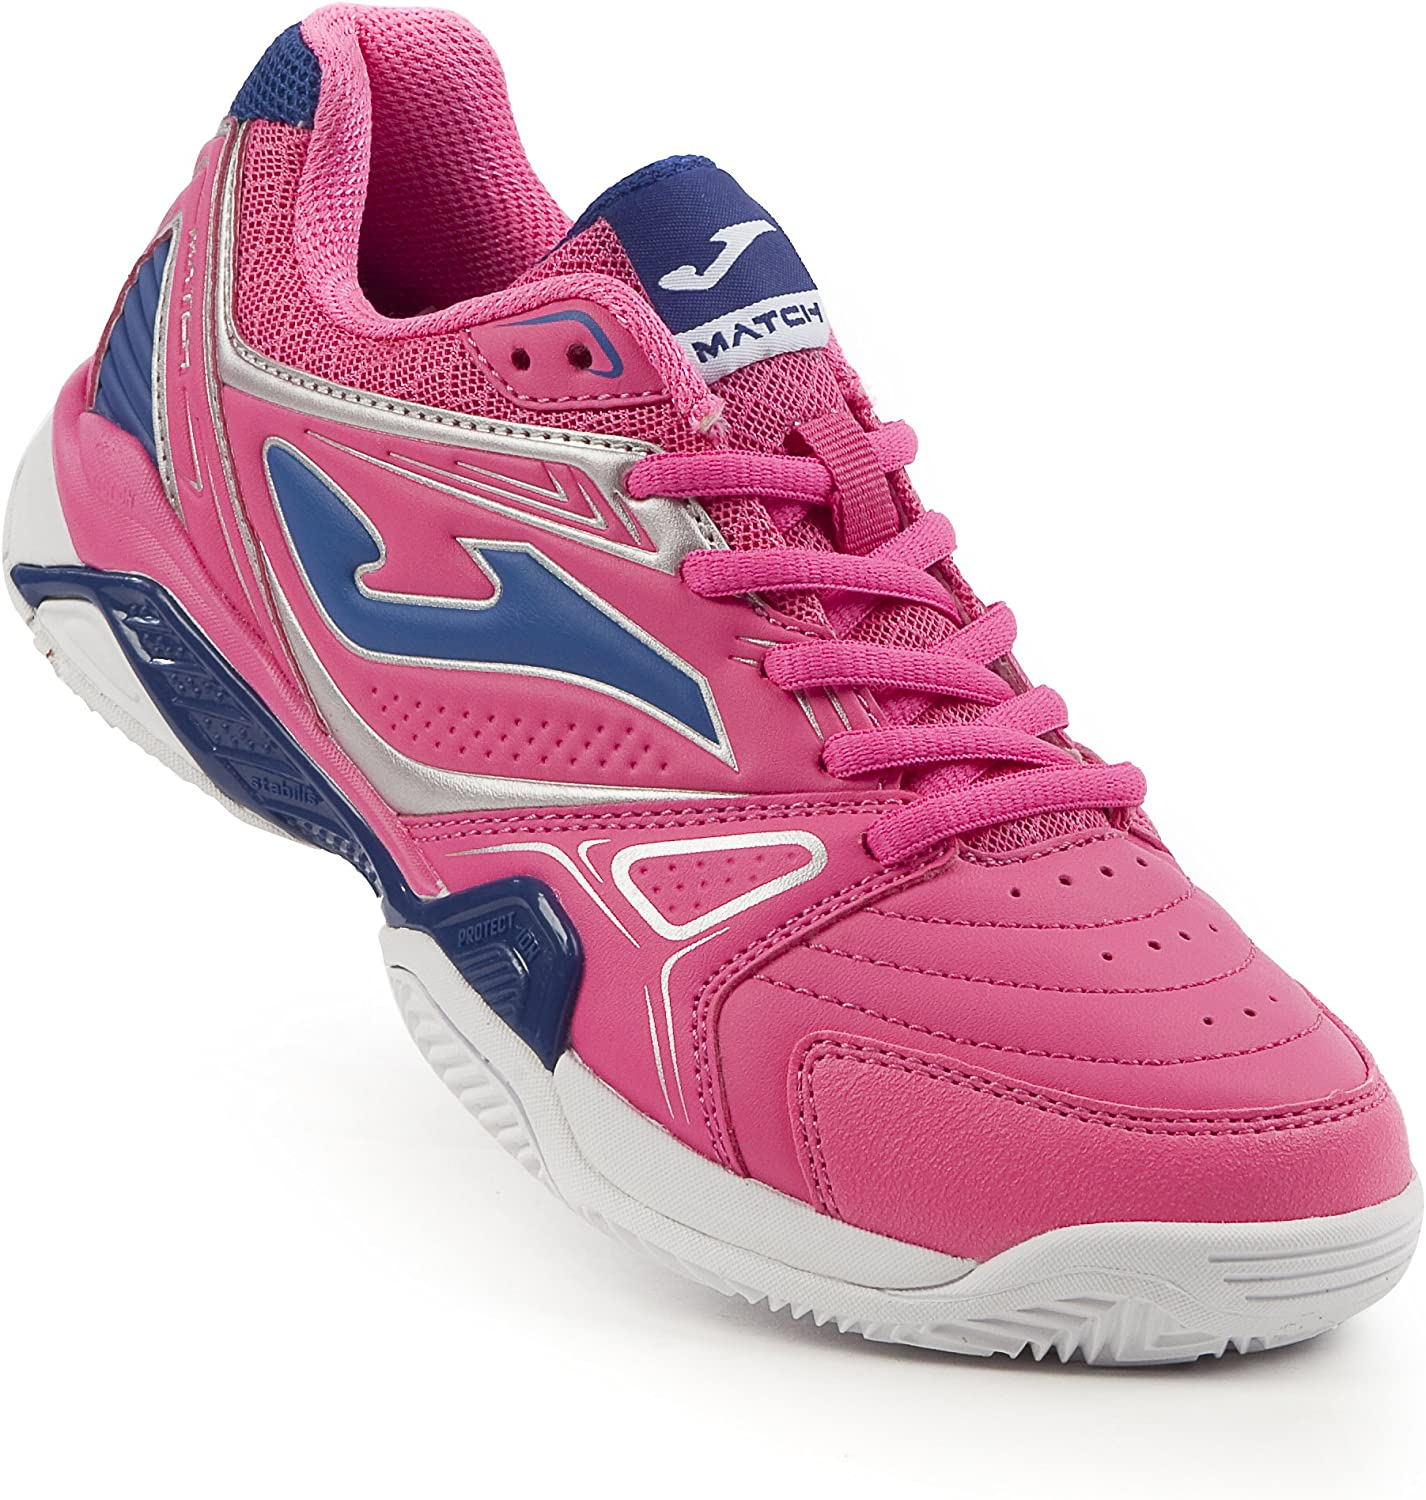 Joma T.Match Lady shoes Spring Summer Tennis shoes Woman Tenis Padel